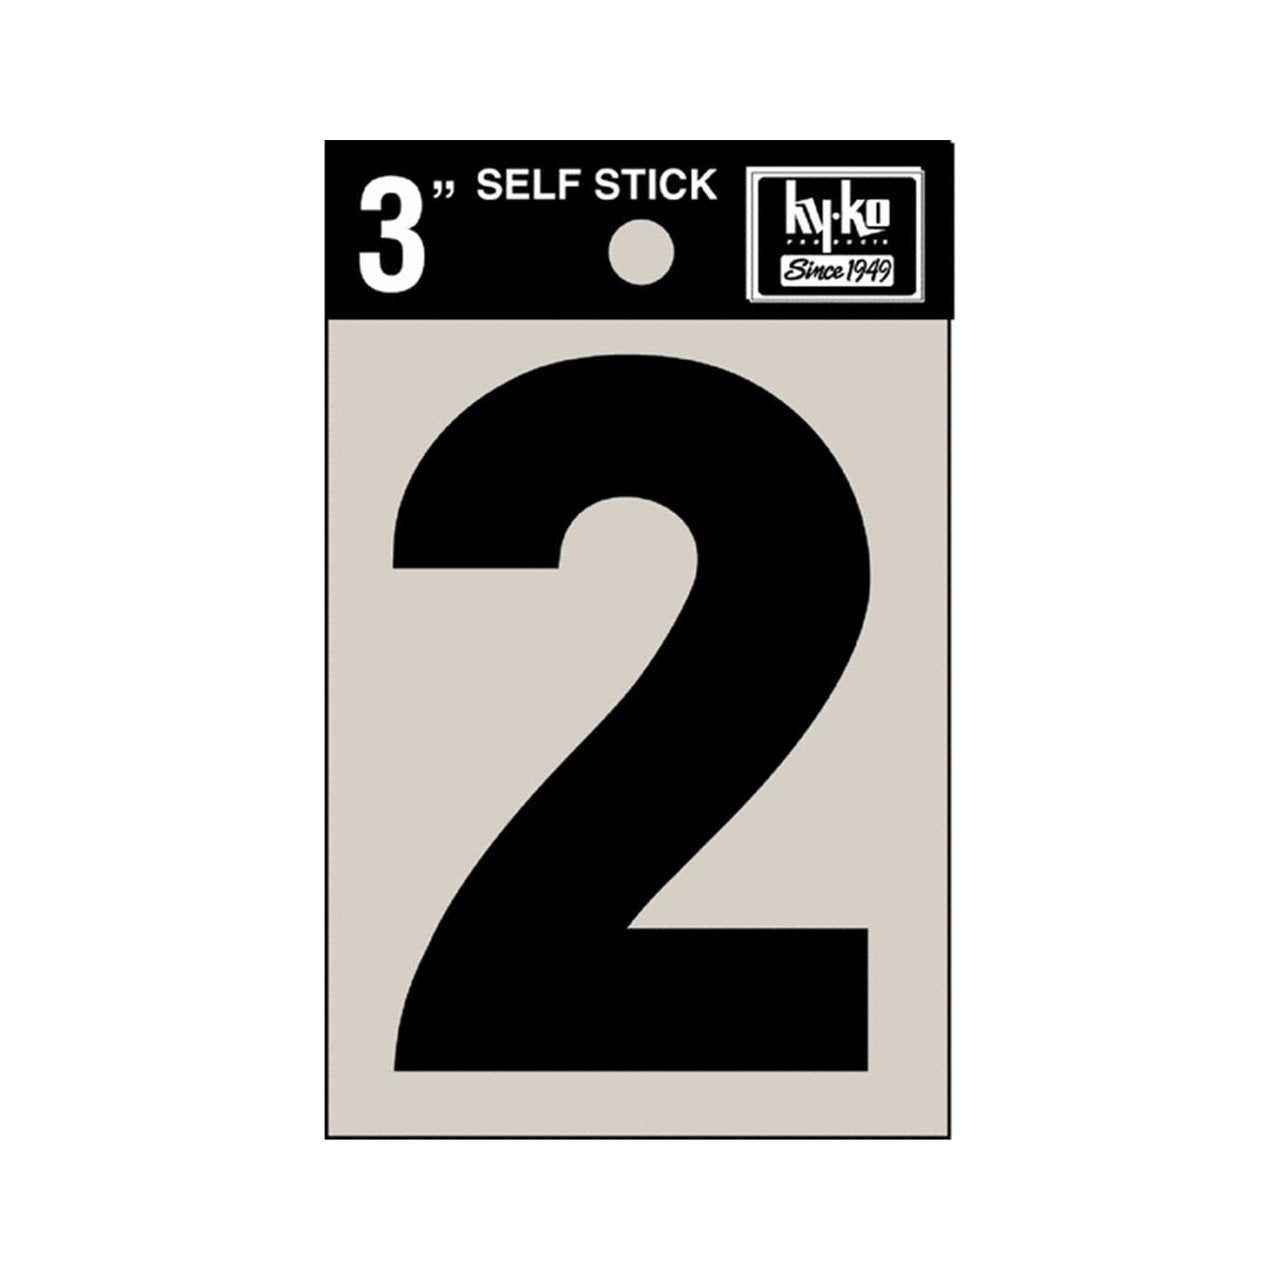 "Hy-Ko 30402 Self-Stick Vinyl Die-Cut Number 2 Sign, 3"", Black"